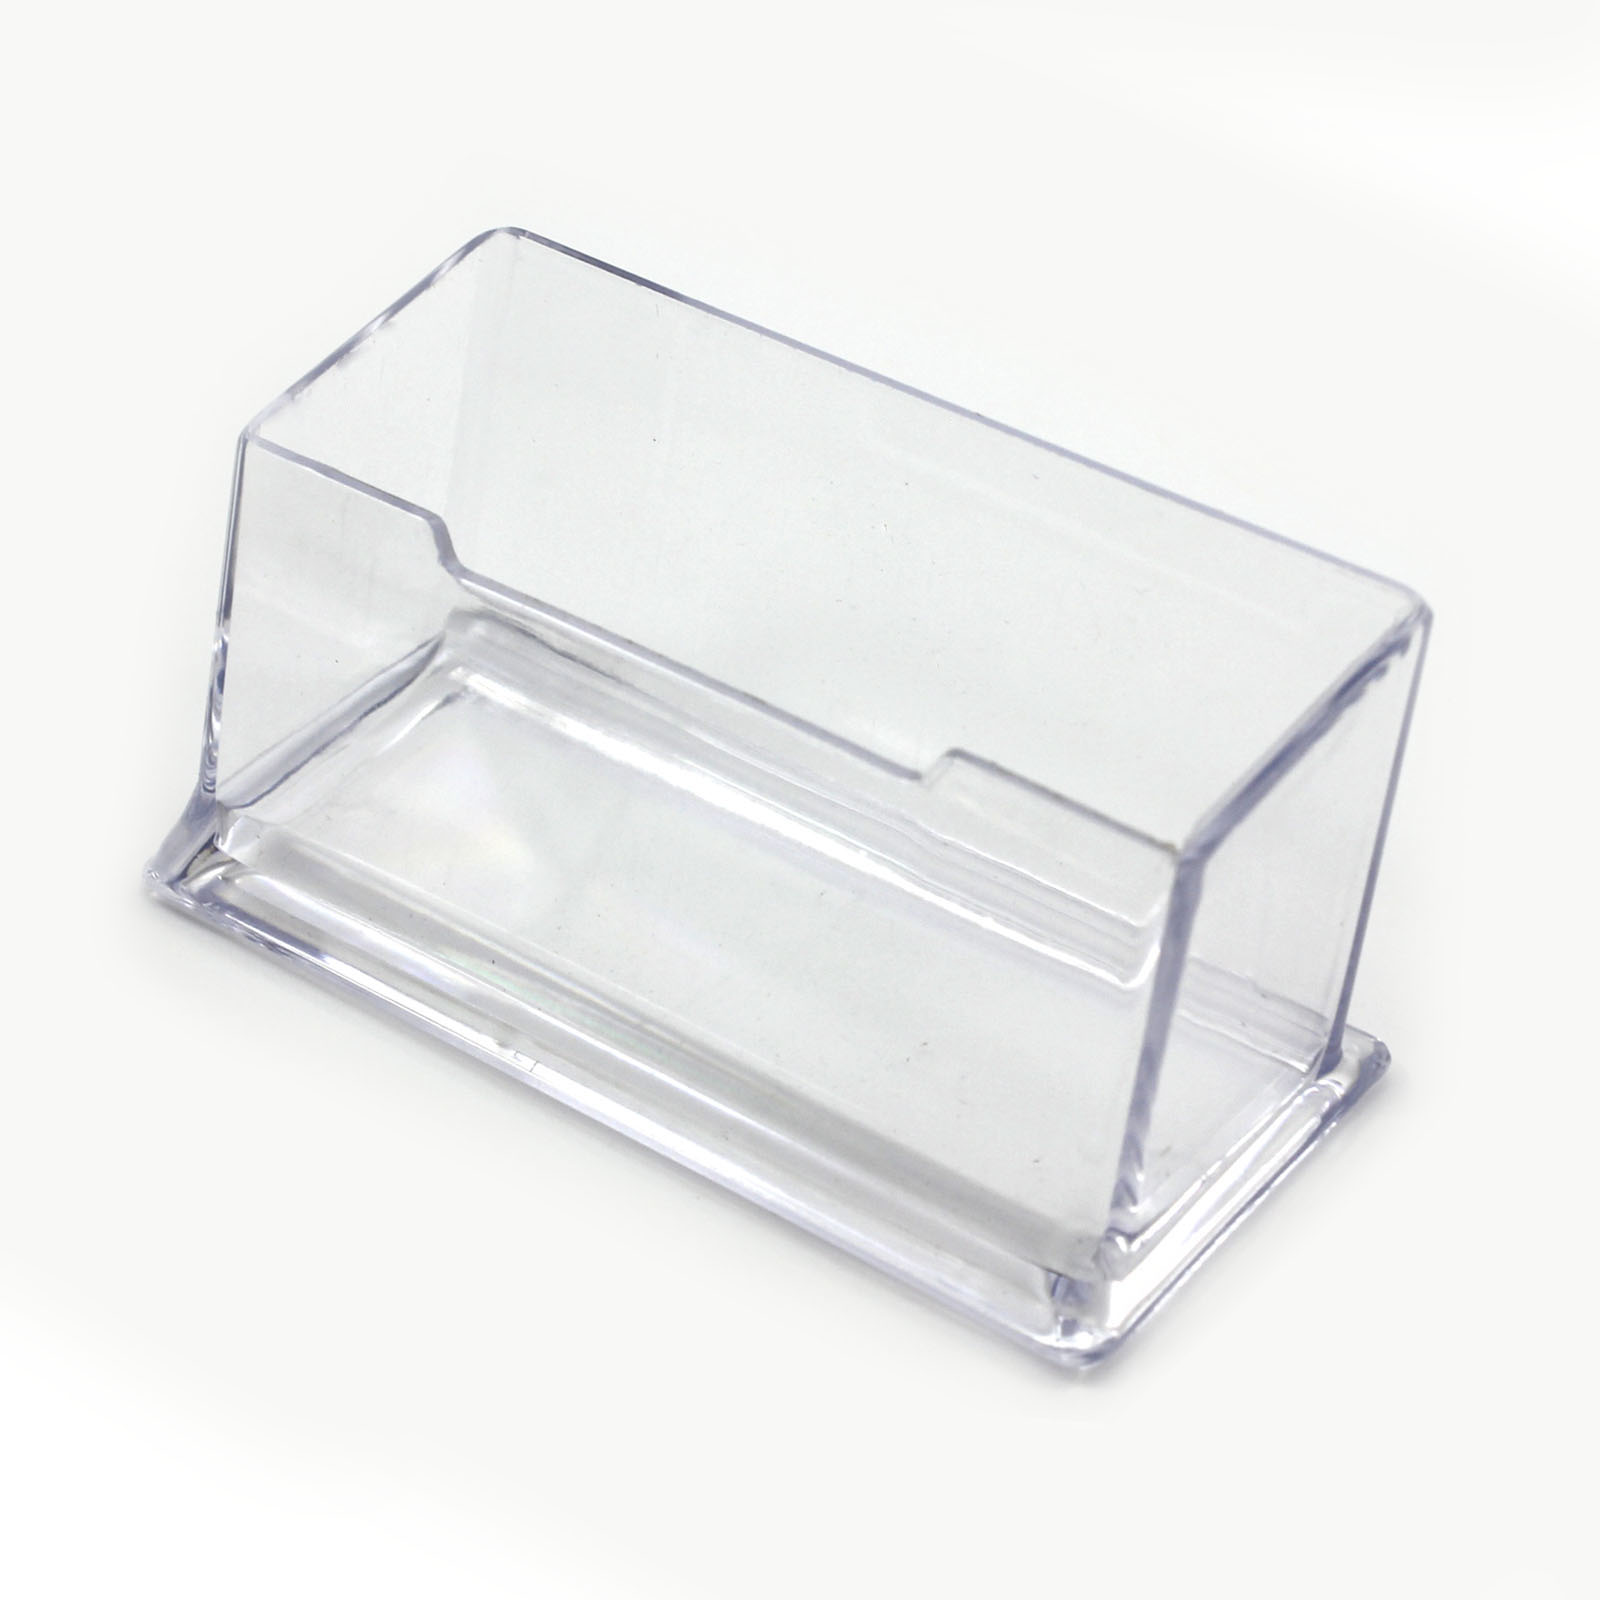 compare prices on acrylic card holder online shopping low